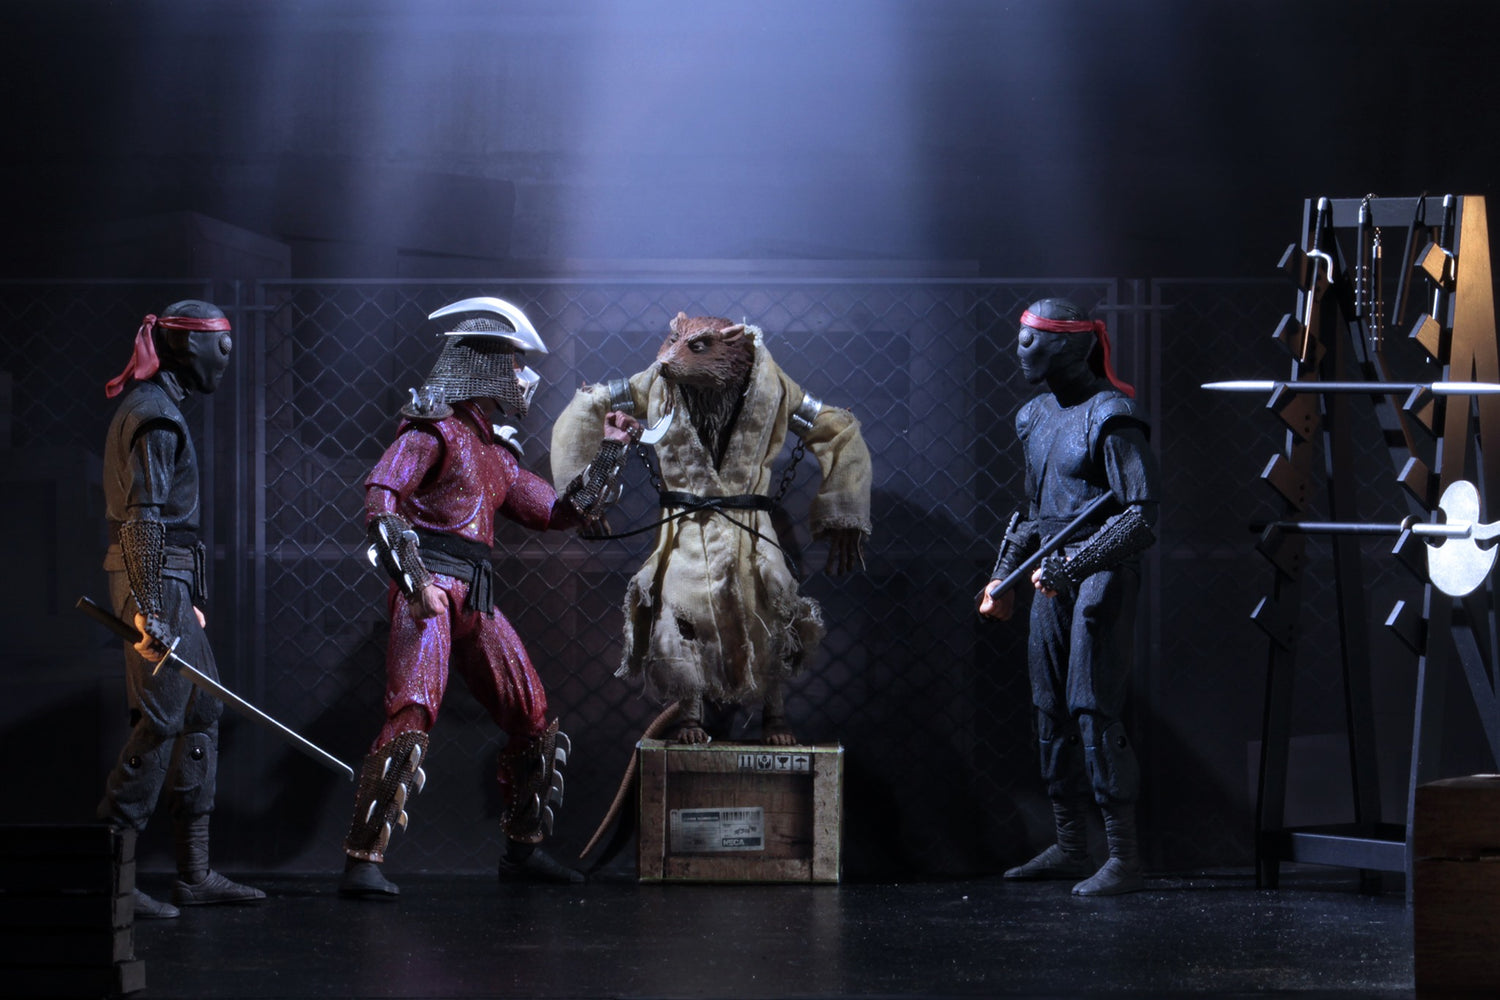 "PRE-ORDER: Teenage Mutant Ninja Turtles (1990) - Set Of Shredder, Splinter, Foot Soldier (Bladed) & Foot Soldier (Melee) 7"" Action Figures"